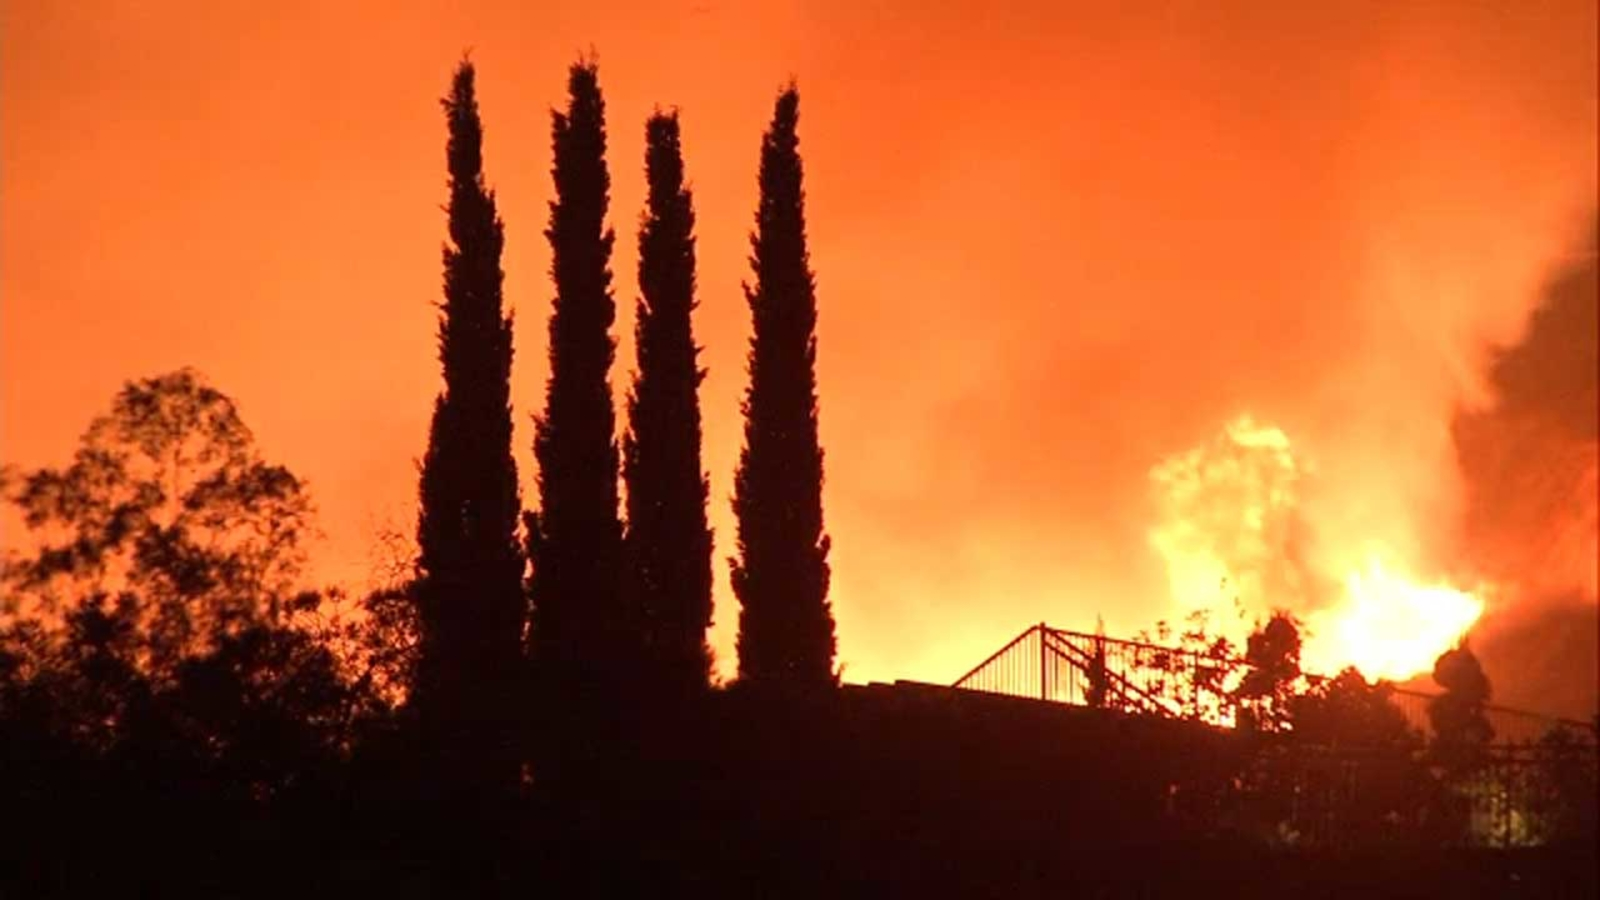 Fires In Southern California Today Abc7 Coverage Of Wildfires Burning In Los Angeles Abc7 Los Angeles